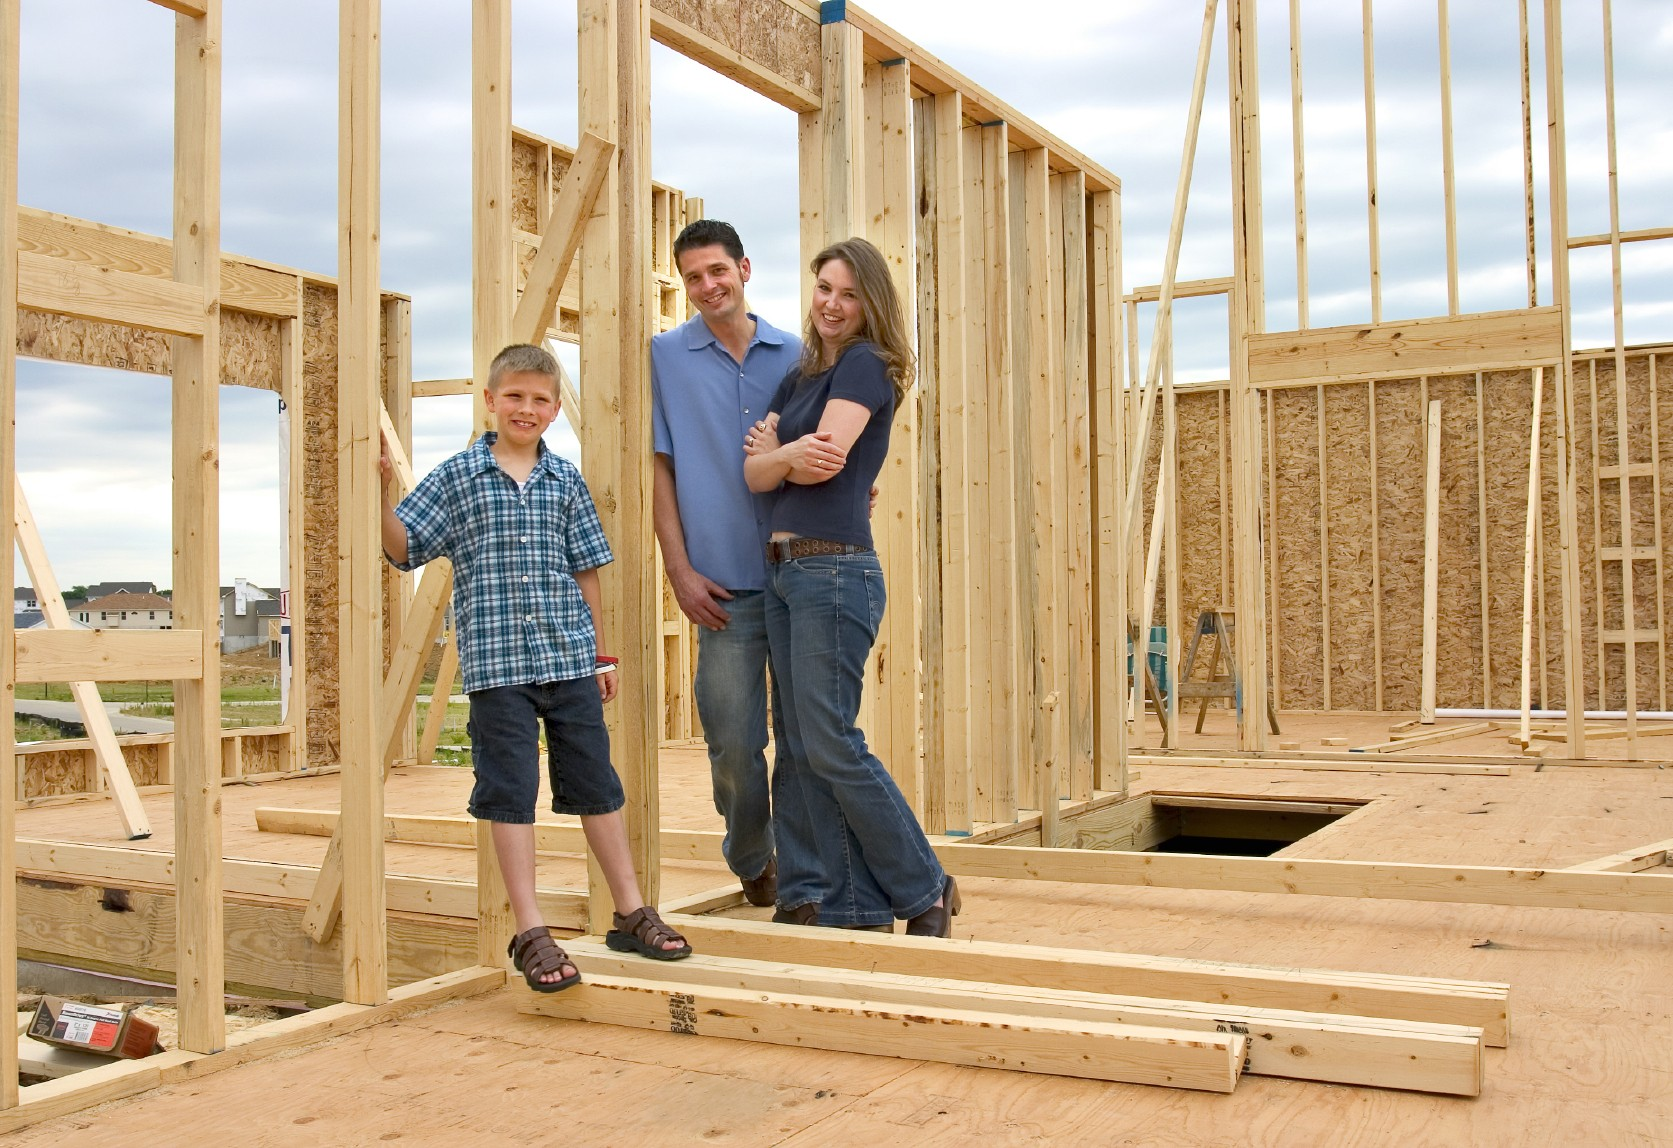 4 Ways to Choose Between Buying a Home or Building One